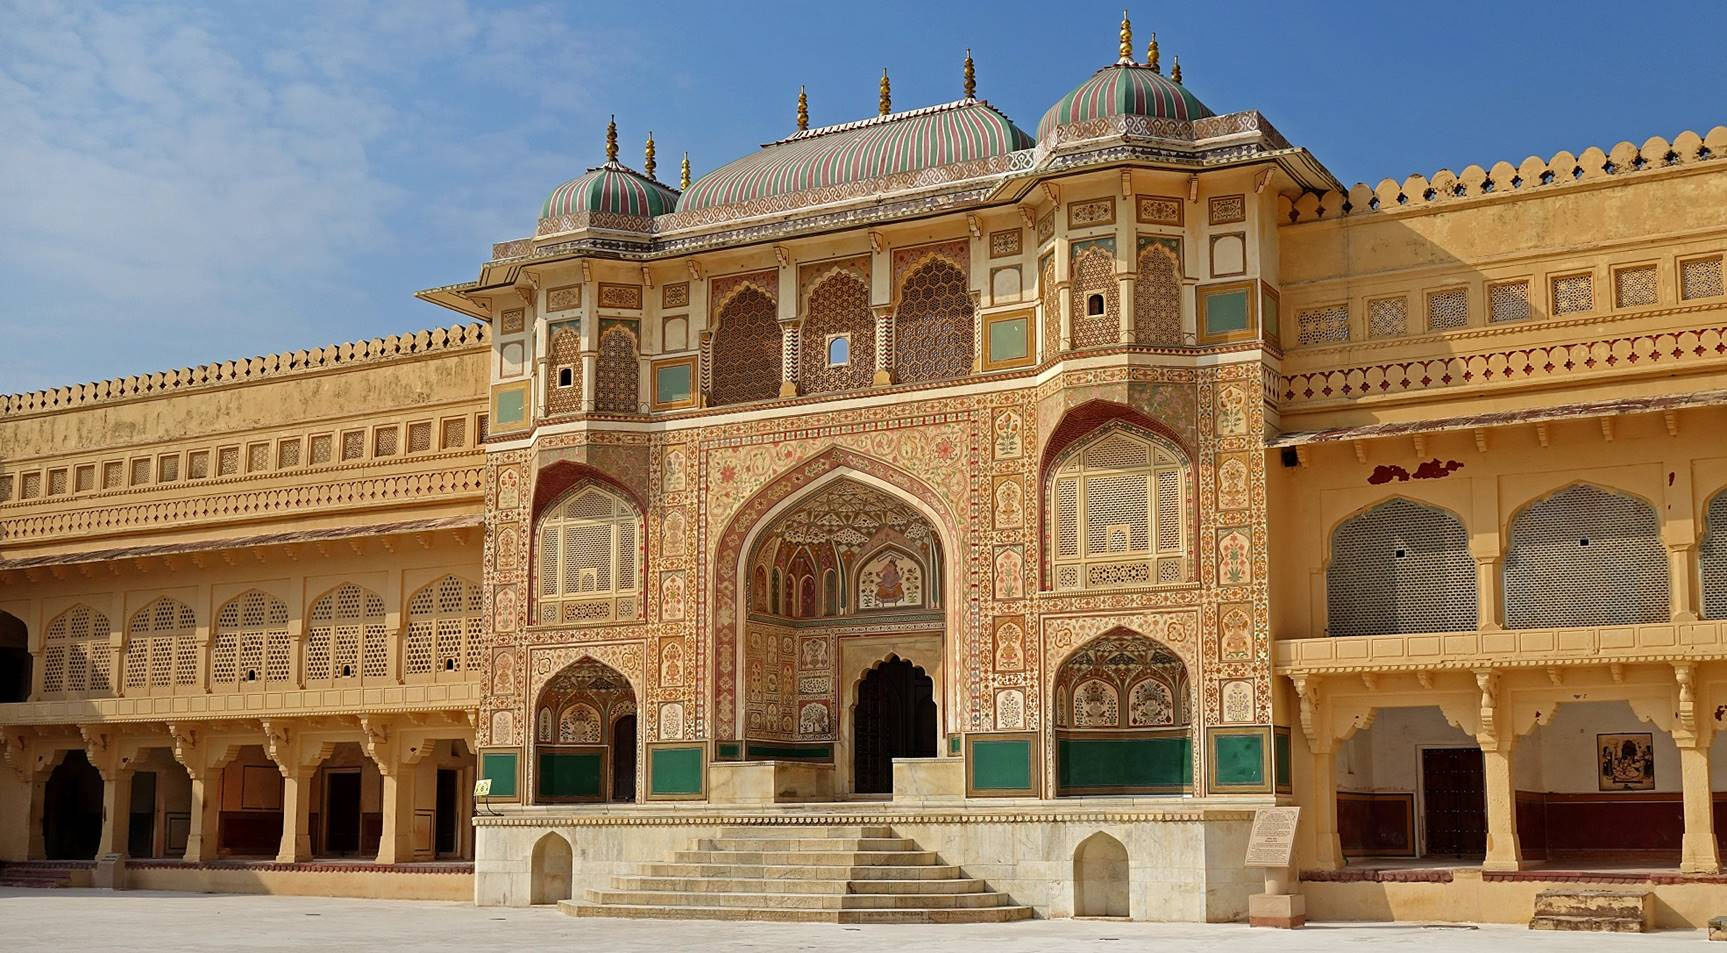 Without Borders 2021- Amer or Amber Fort